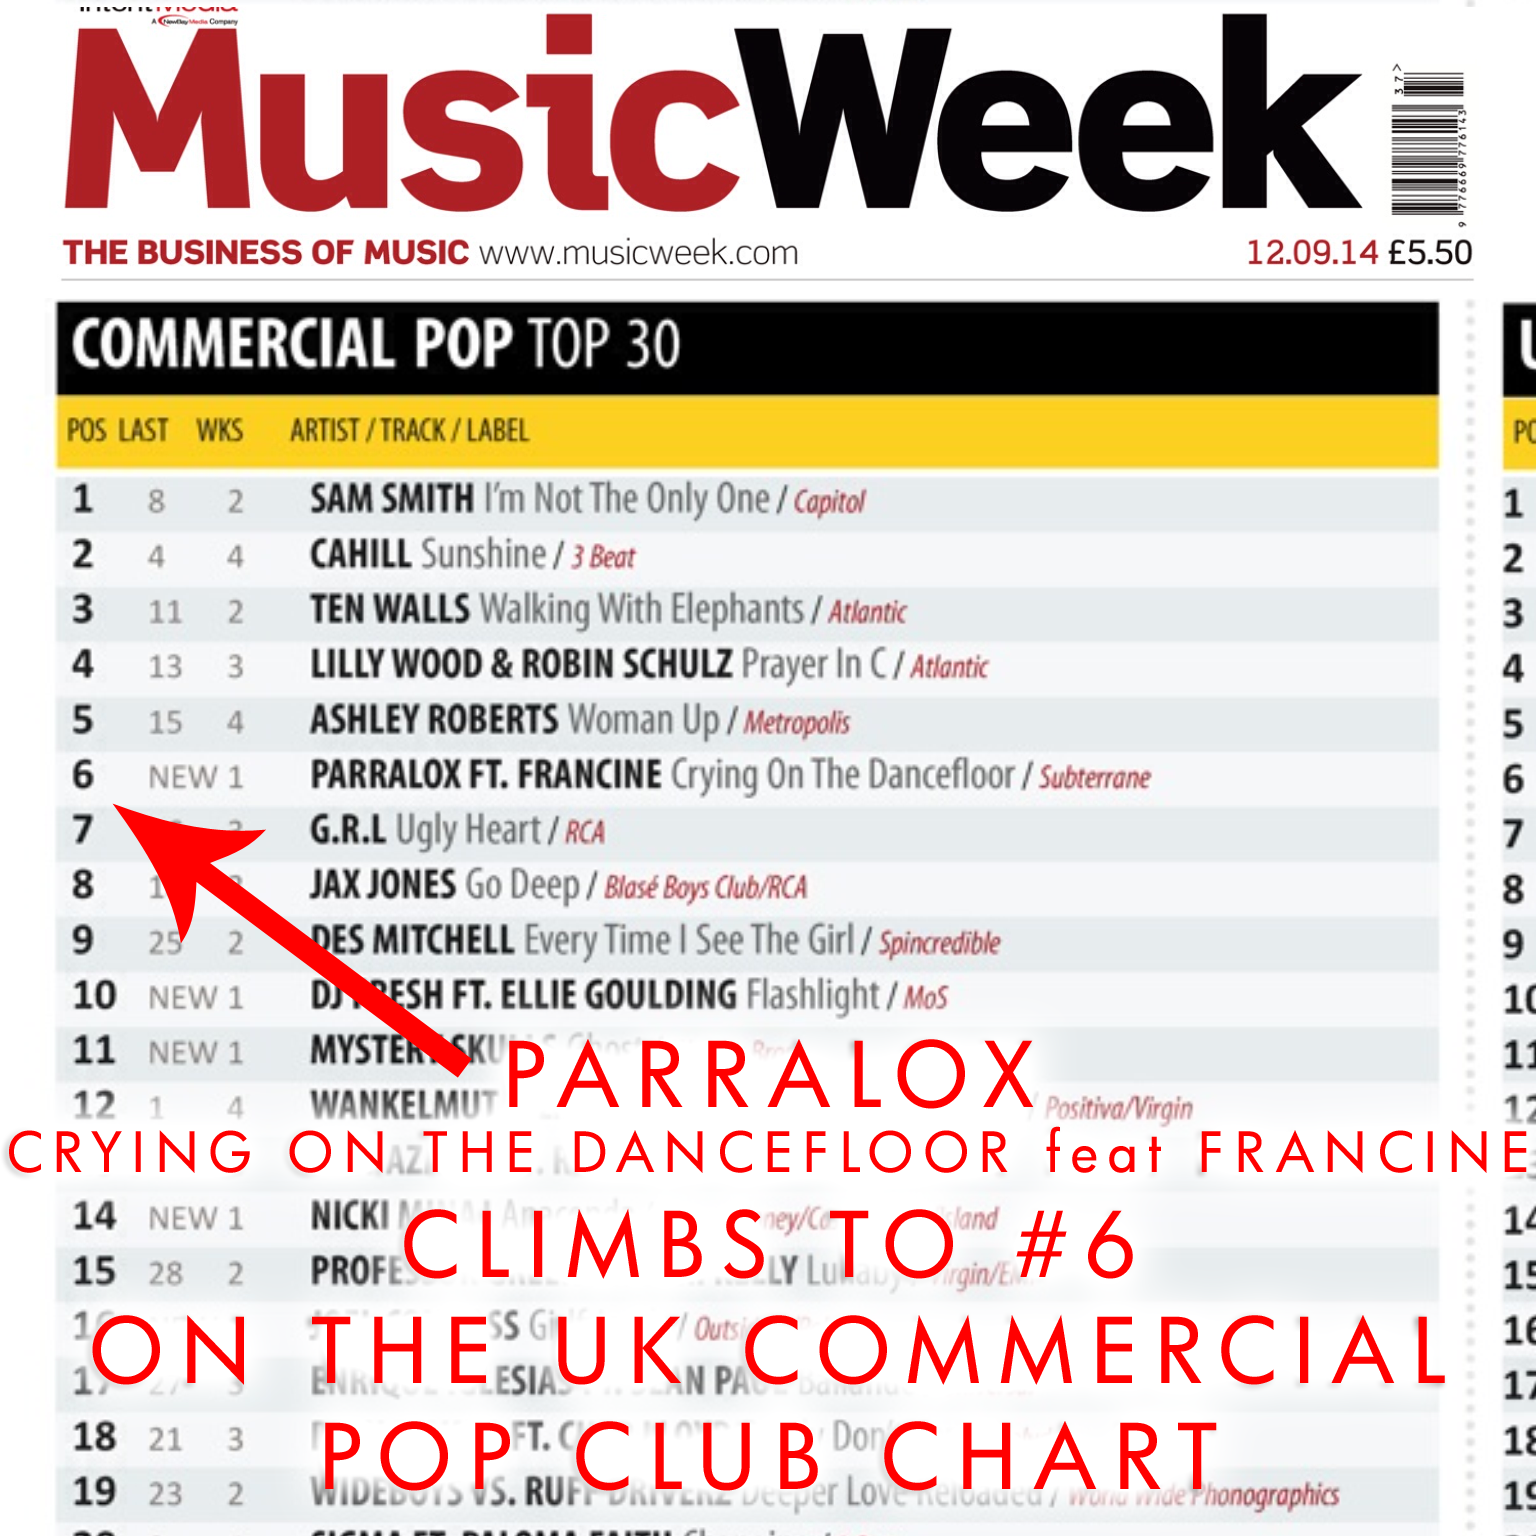 Parralox - Crying on the Dancefloor feat Francine climbs to #6 on the Official UK Music Week Charts